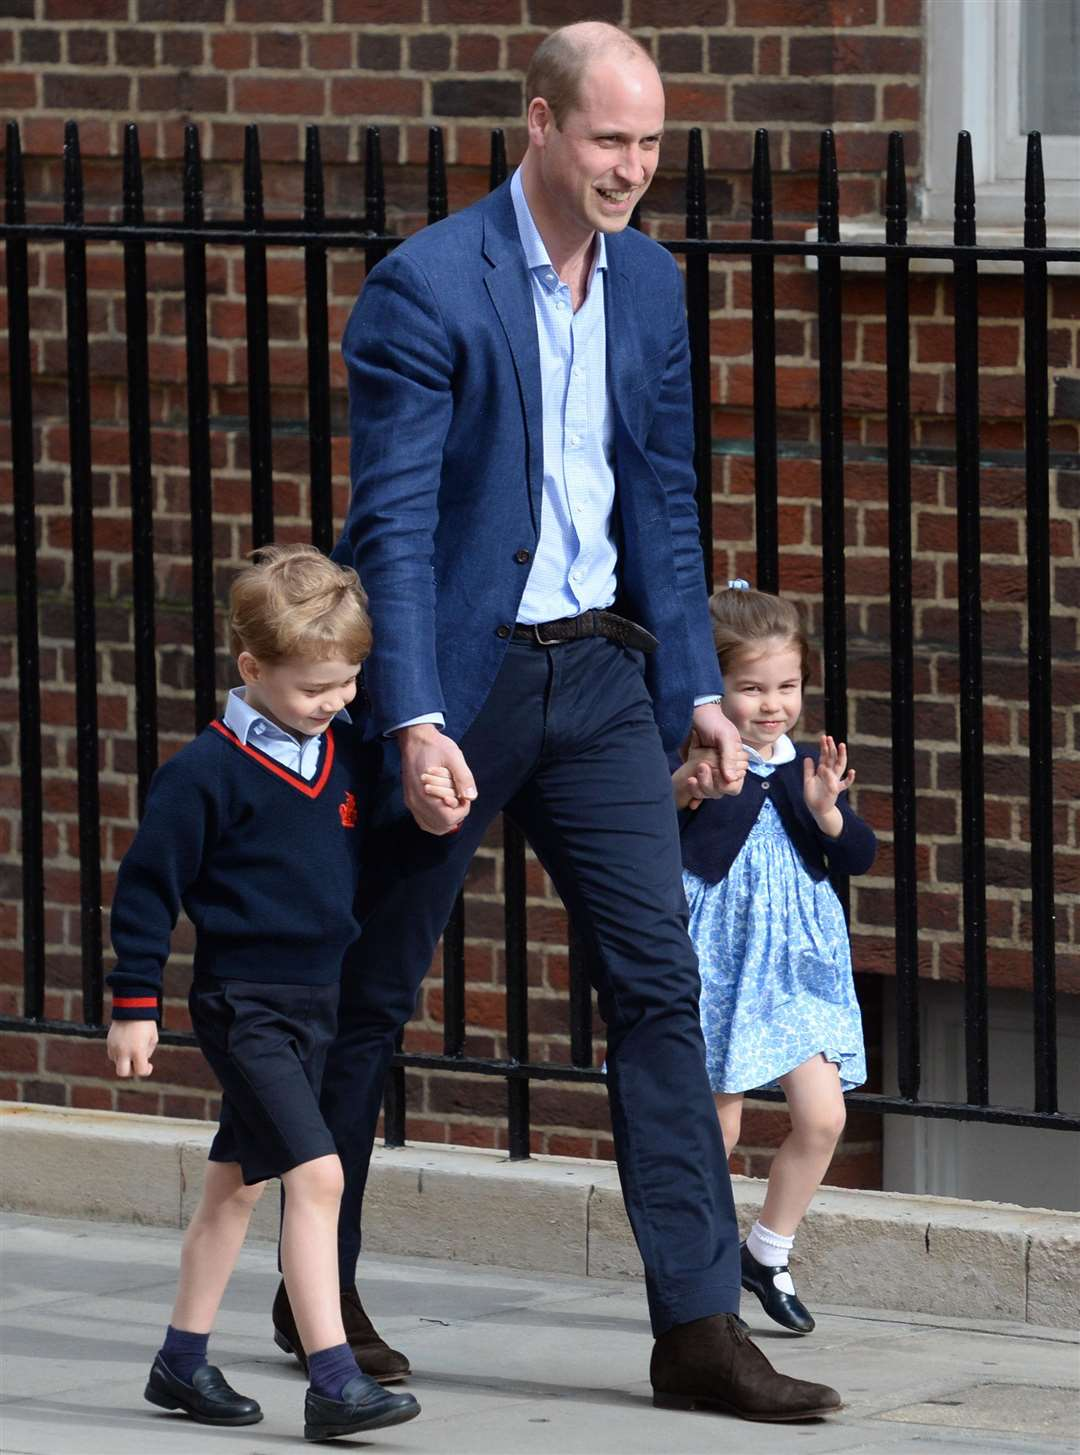 The Duke of Cambridge with Prince George and Princess Charlotte arriving at St Mary's Hospital in Paddington where the duke's third child was born on Monday